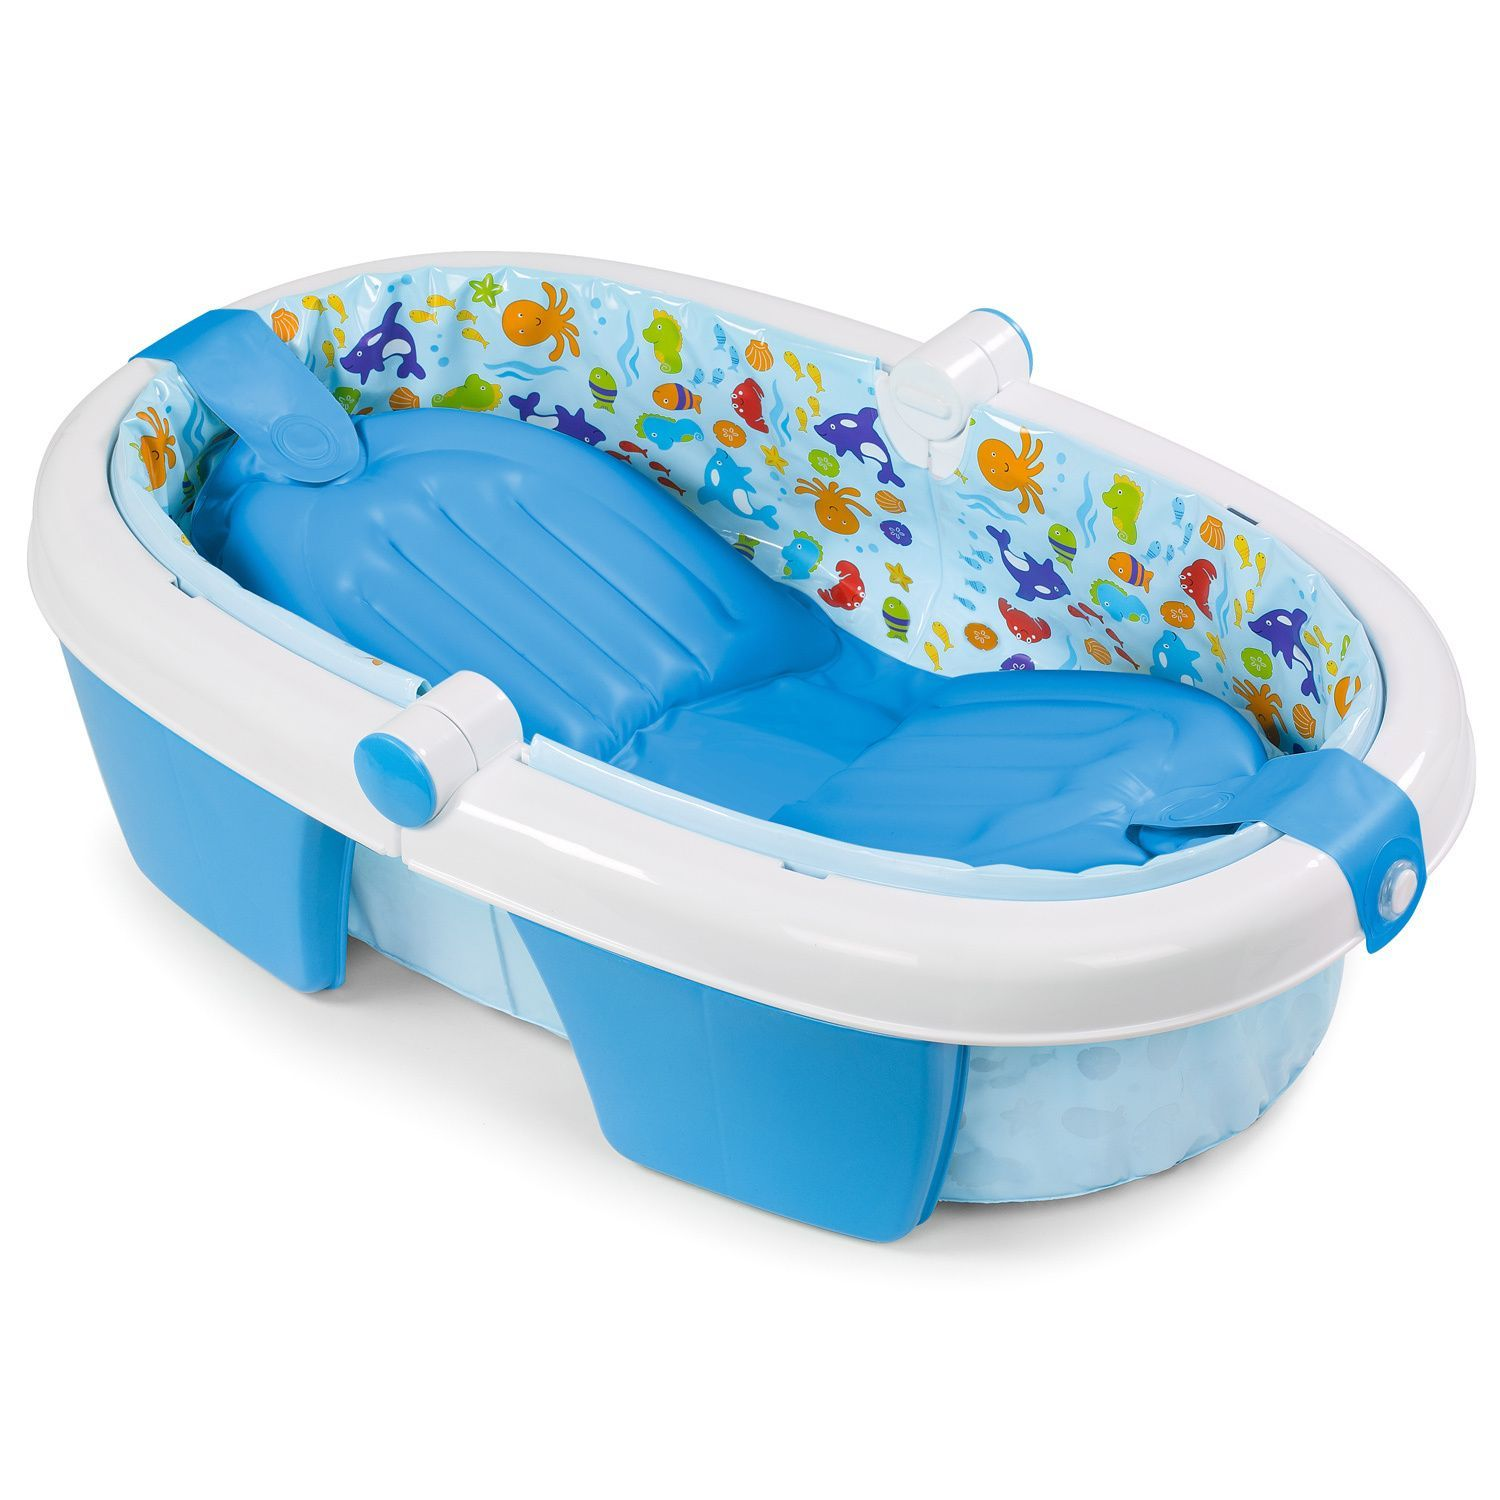 The Foldaway Baby Bath offers versatility and convenience for ...